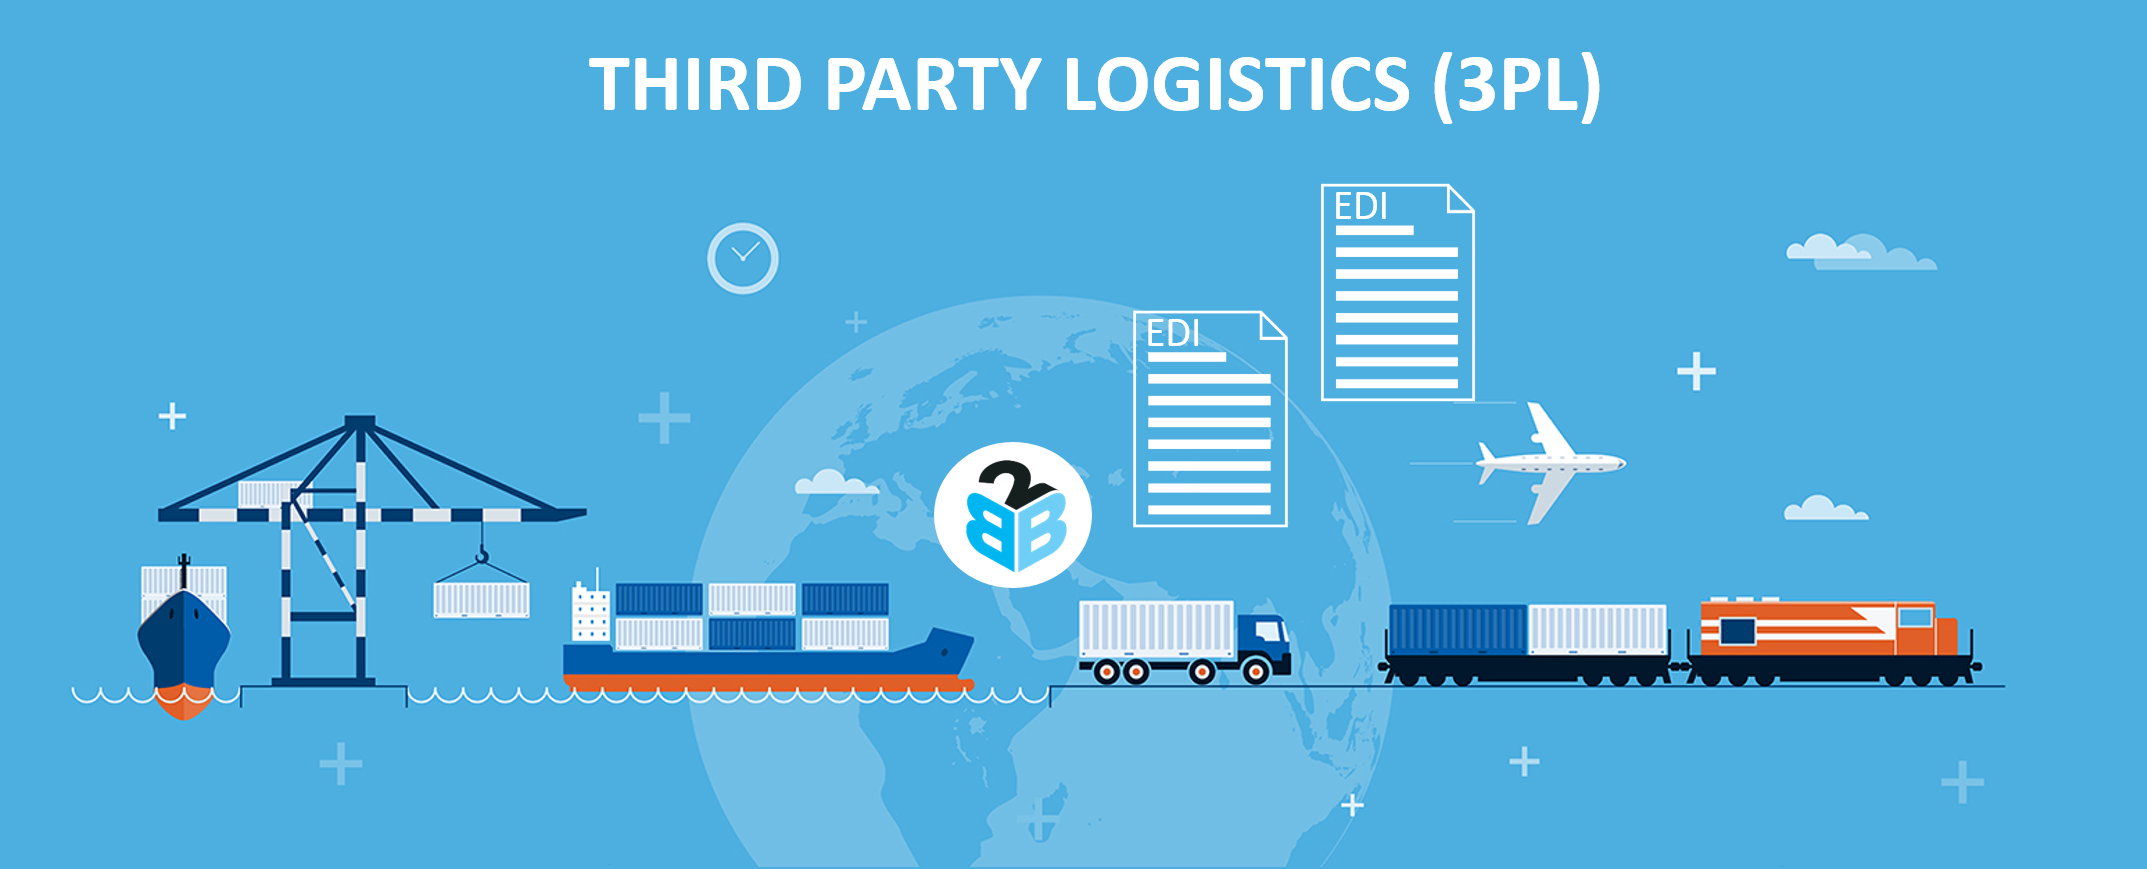 The benefits of using a third party logistics company